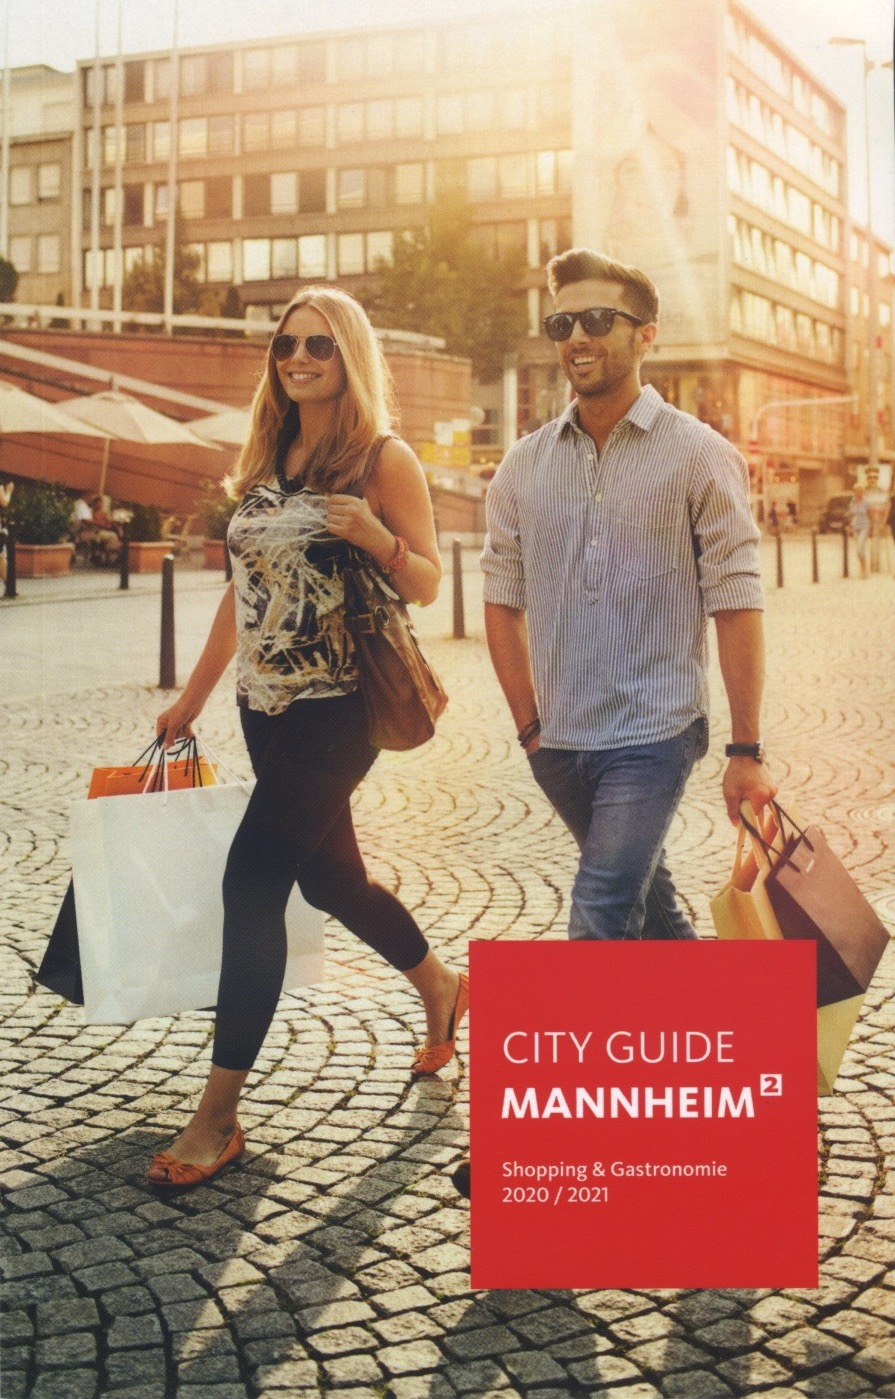 City Guide Mannheim - Shopping & Gastronomie 2020 / 2021